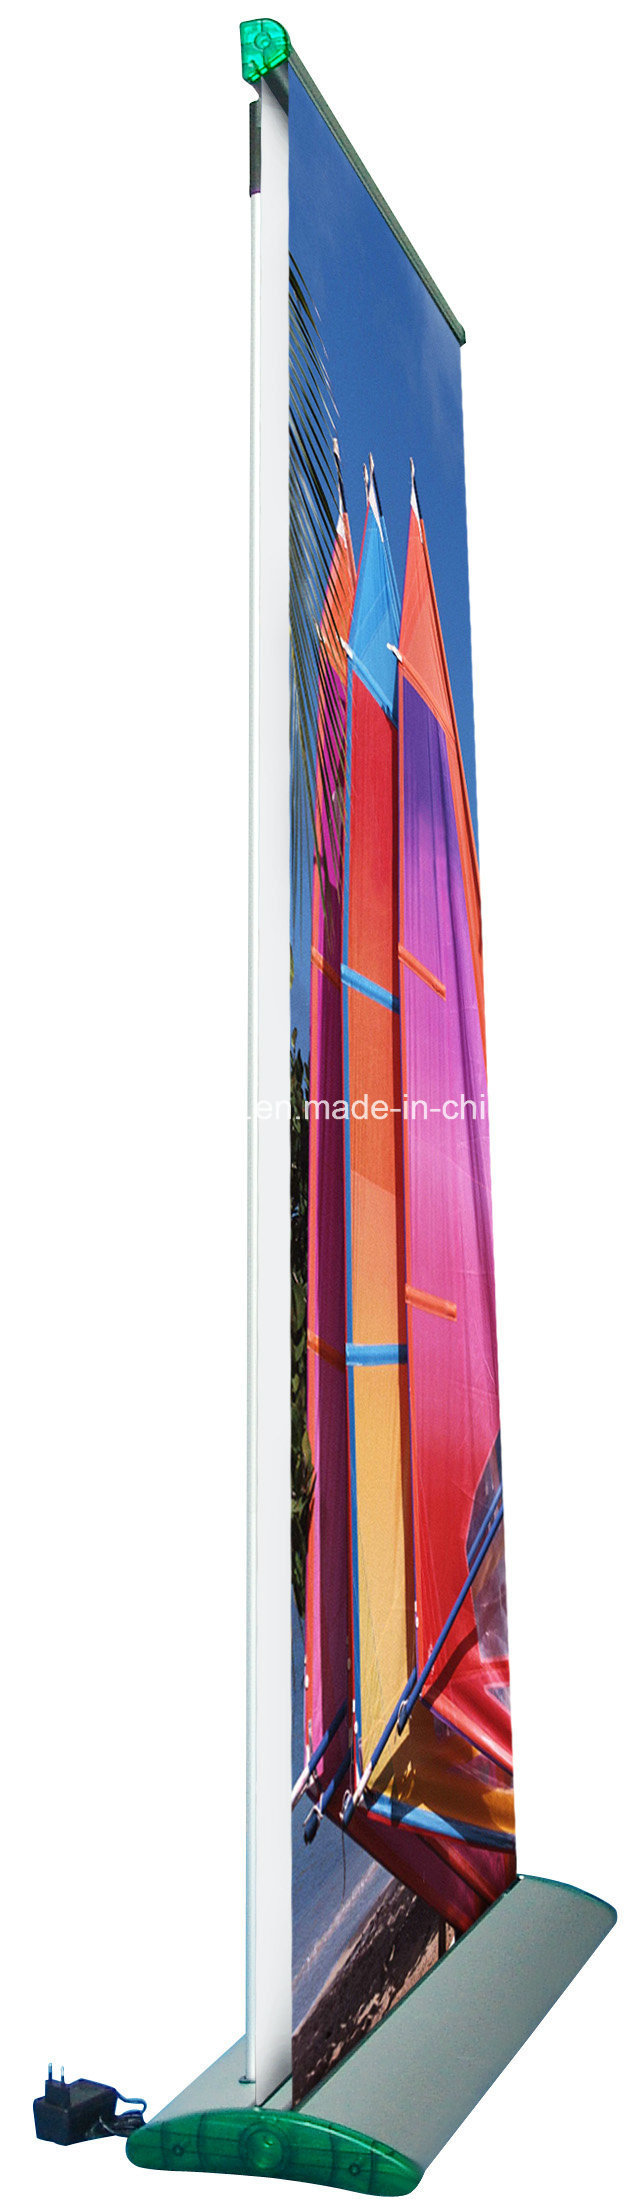 Scrolling Roll up Banner Stand (DW-R-S-20)